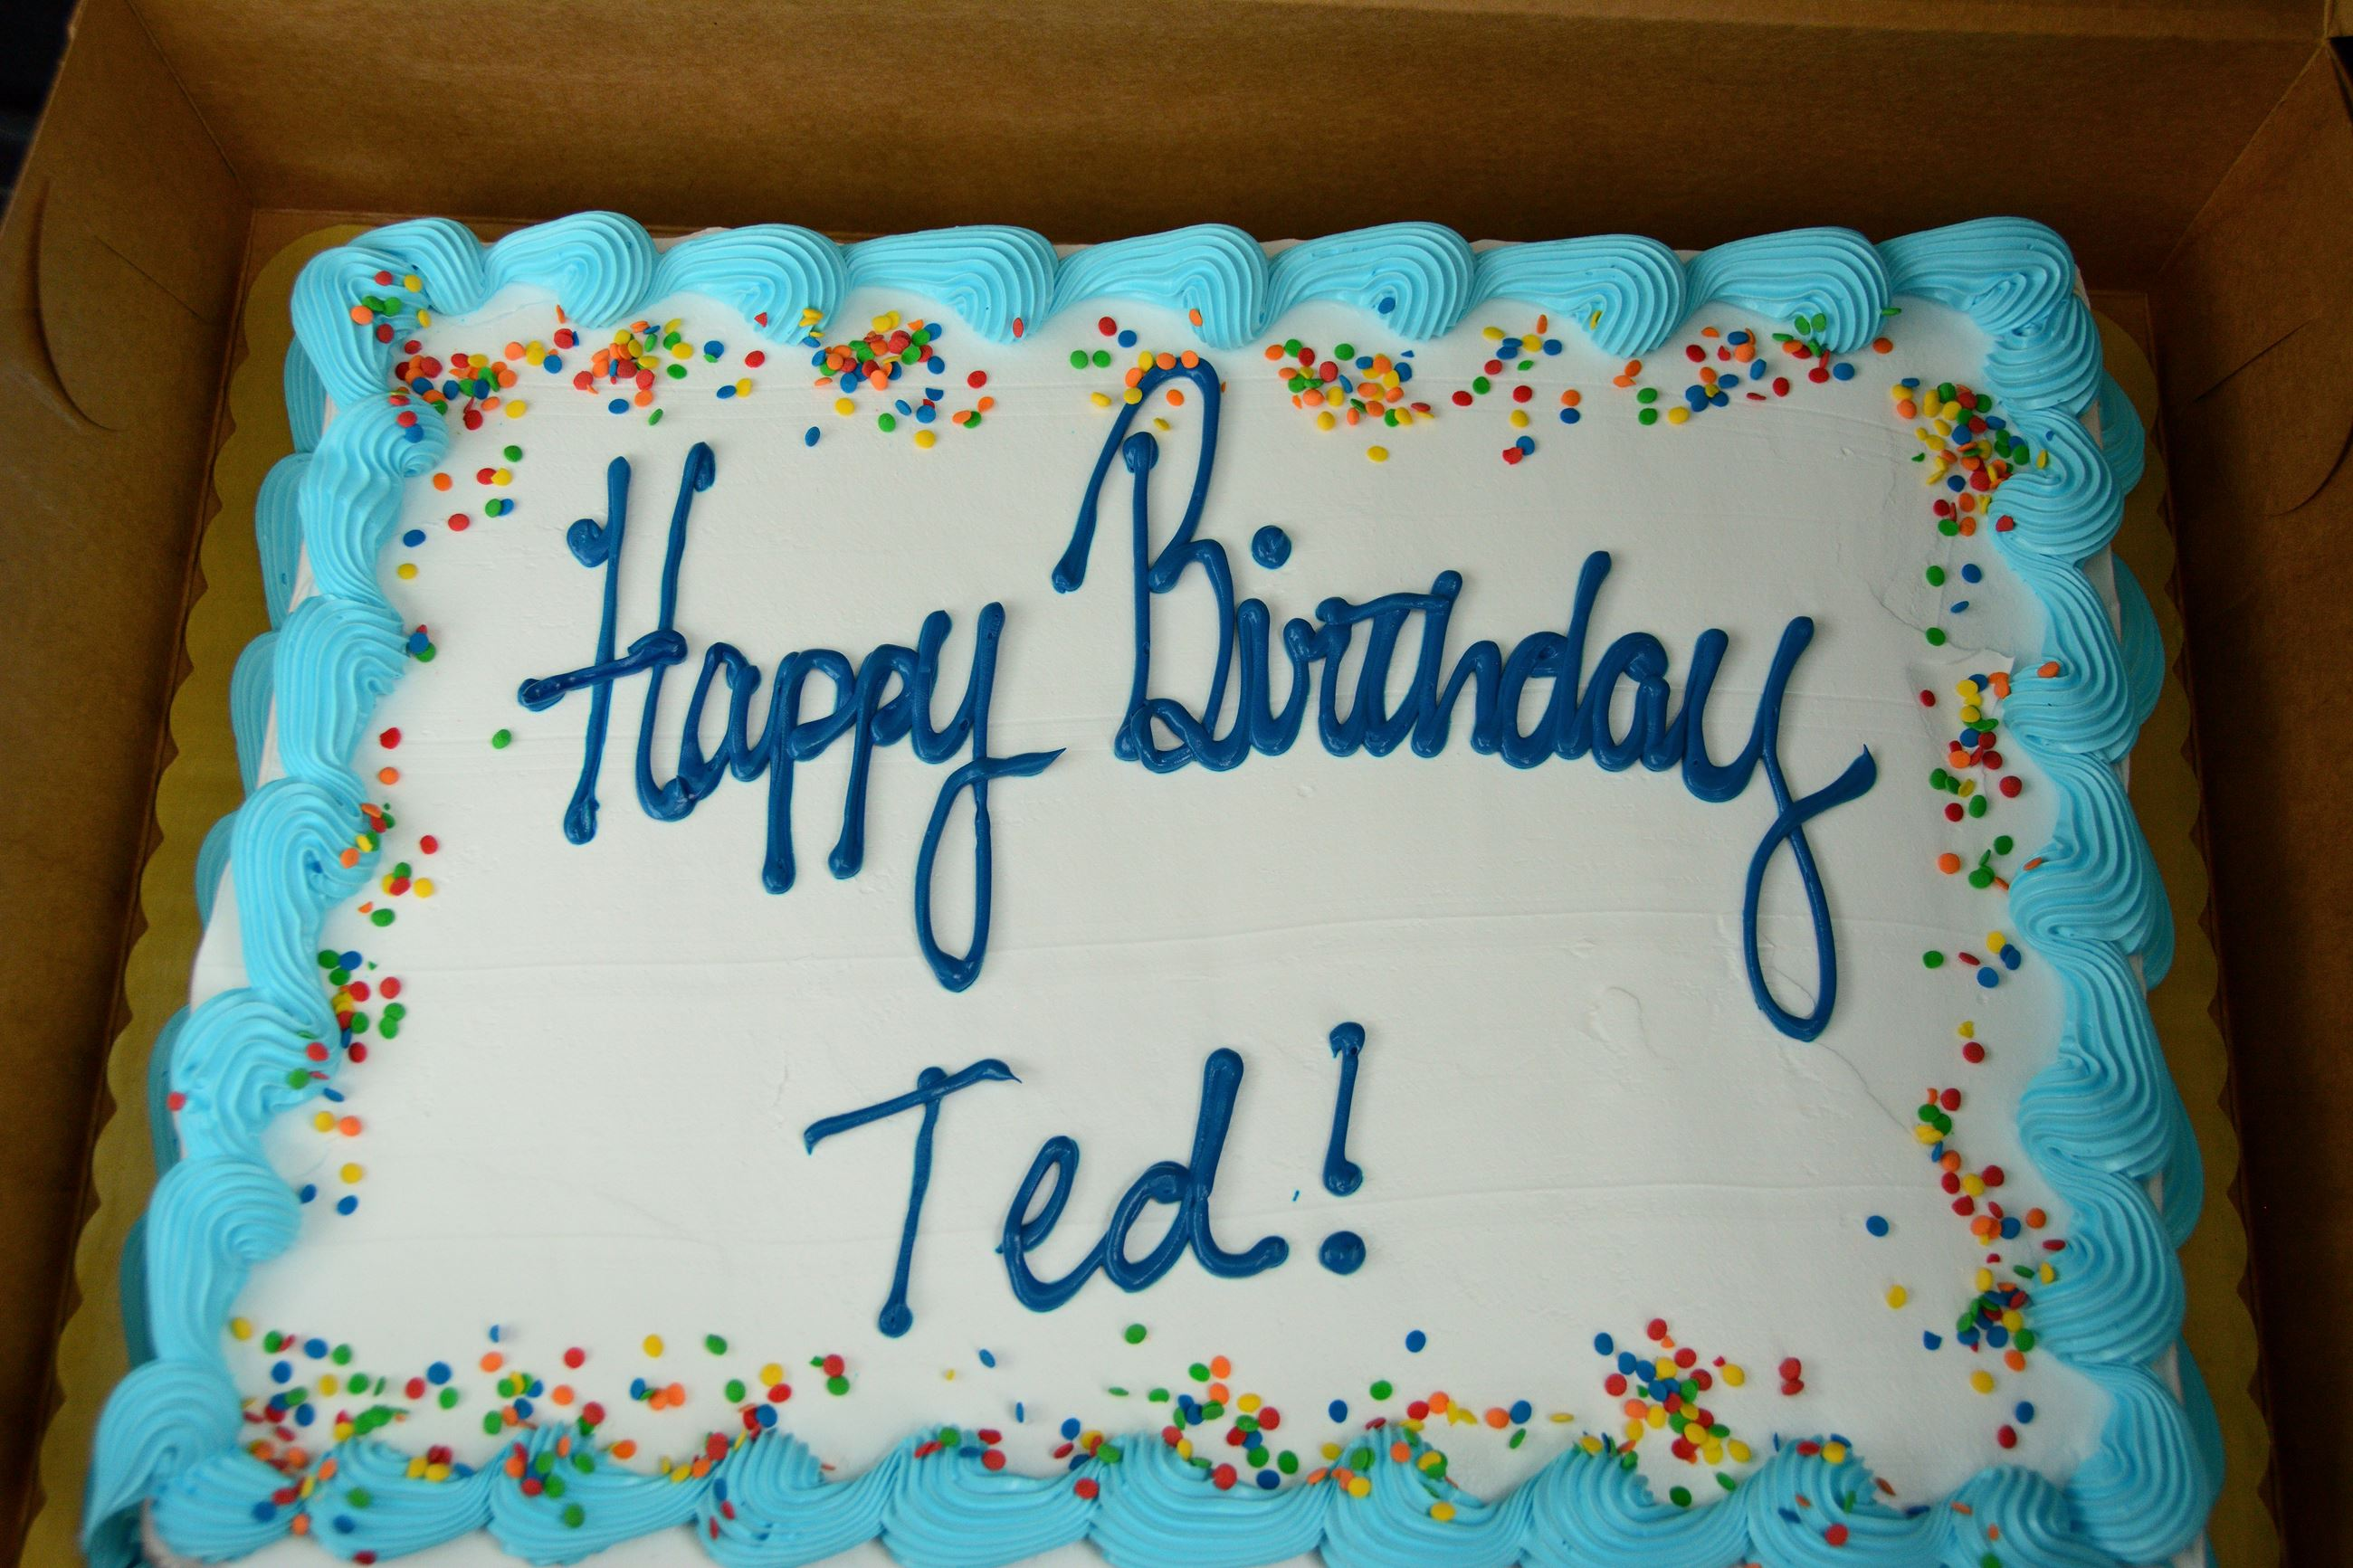 Ted's Cake